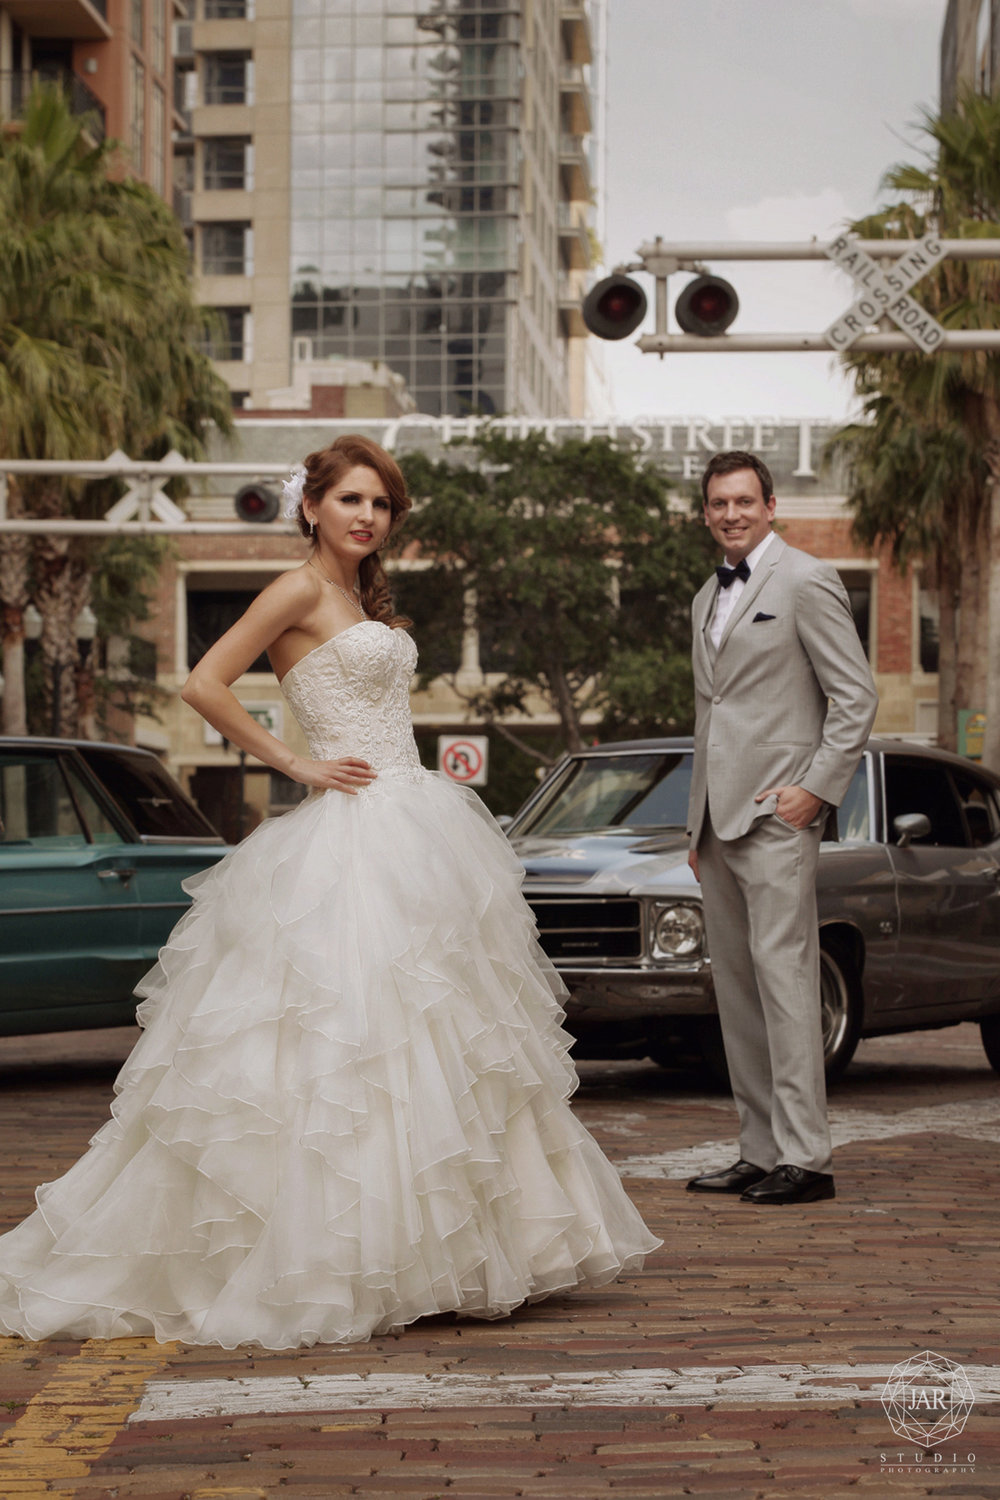 24-stunning-wedding-dress-bride-groom-jarstudio-orlando-photography.JPG